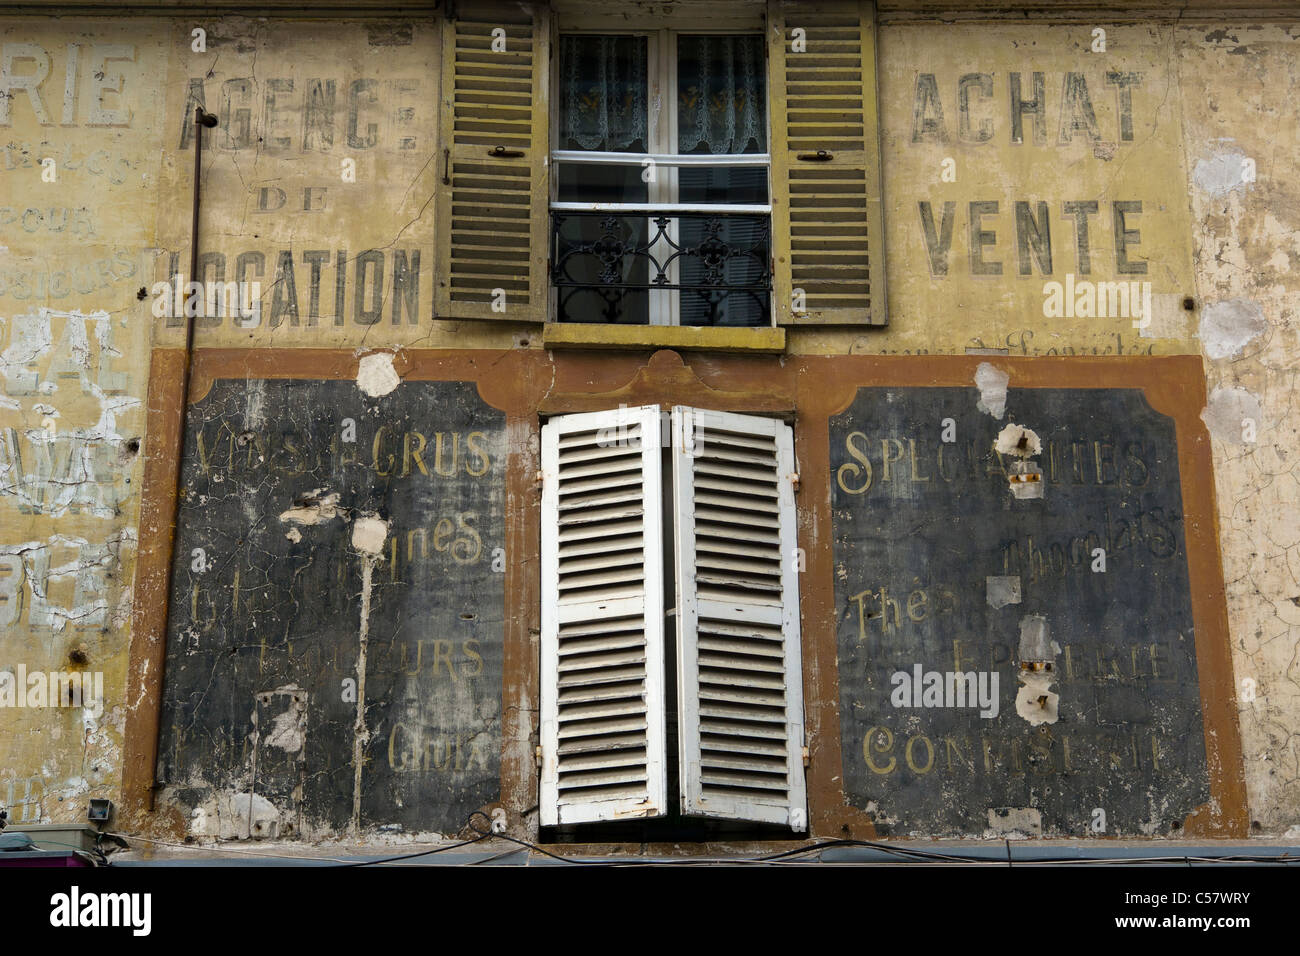 Old advertising on the front of a house at L'Isle-Adam, Val d'Oise France - Stock Image